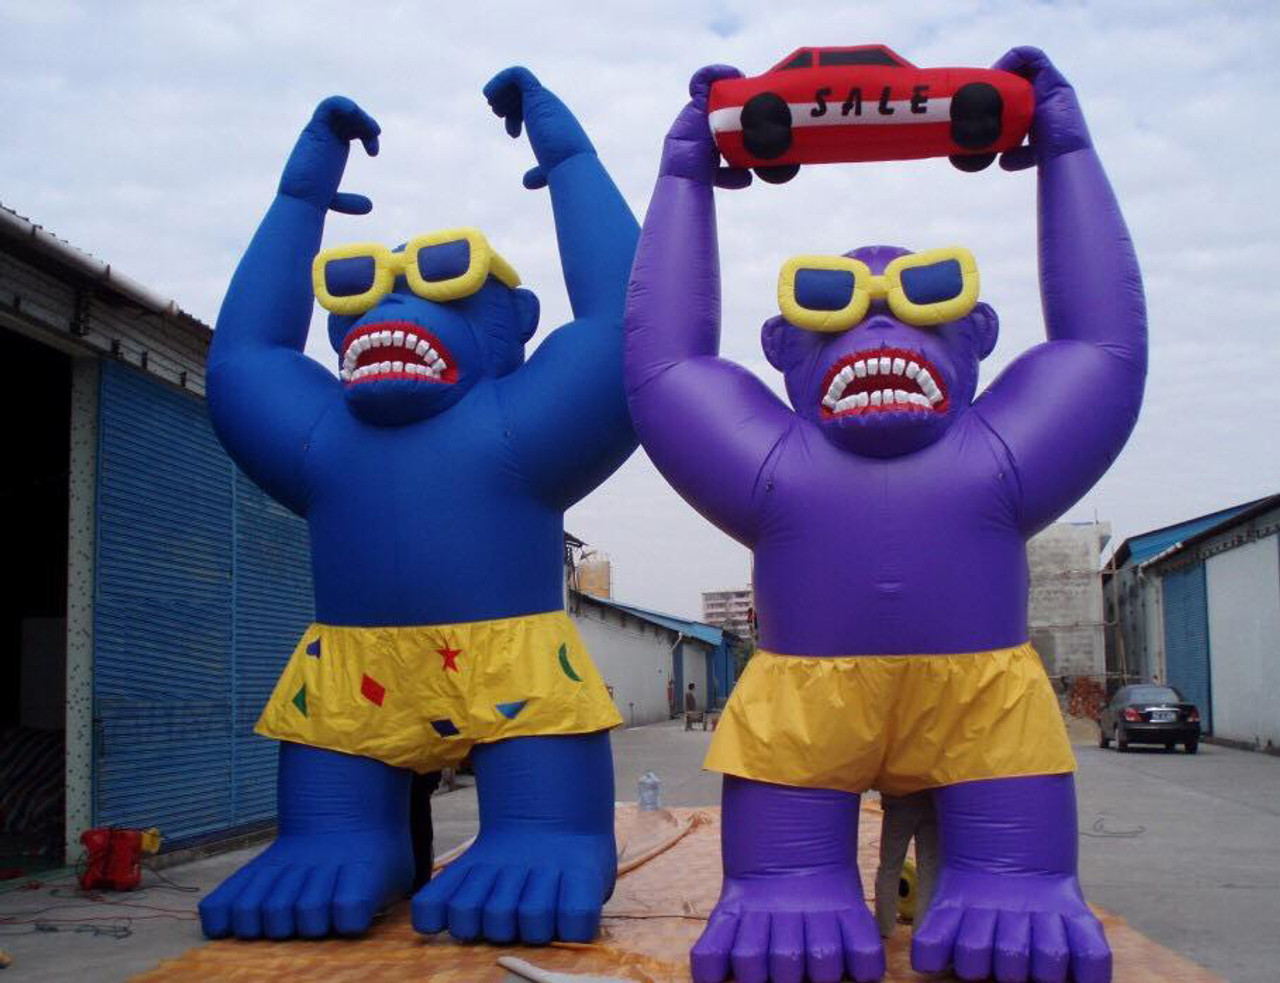 Giant Purple Gorilla With Glasses And Shorts